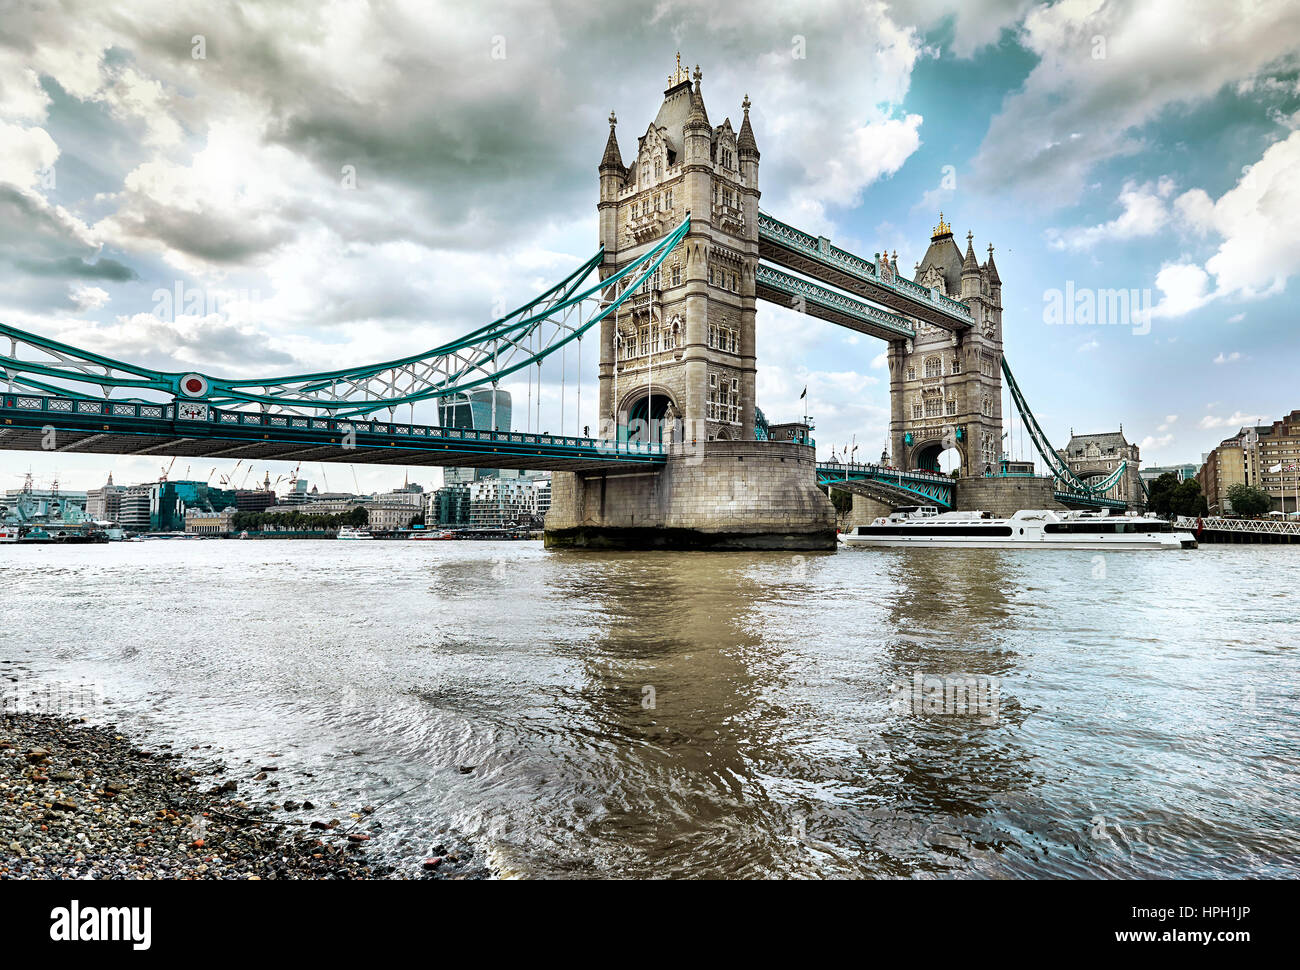 Tower Bridge, London, UK - Stock Image